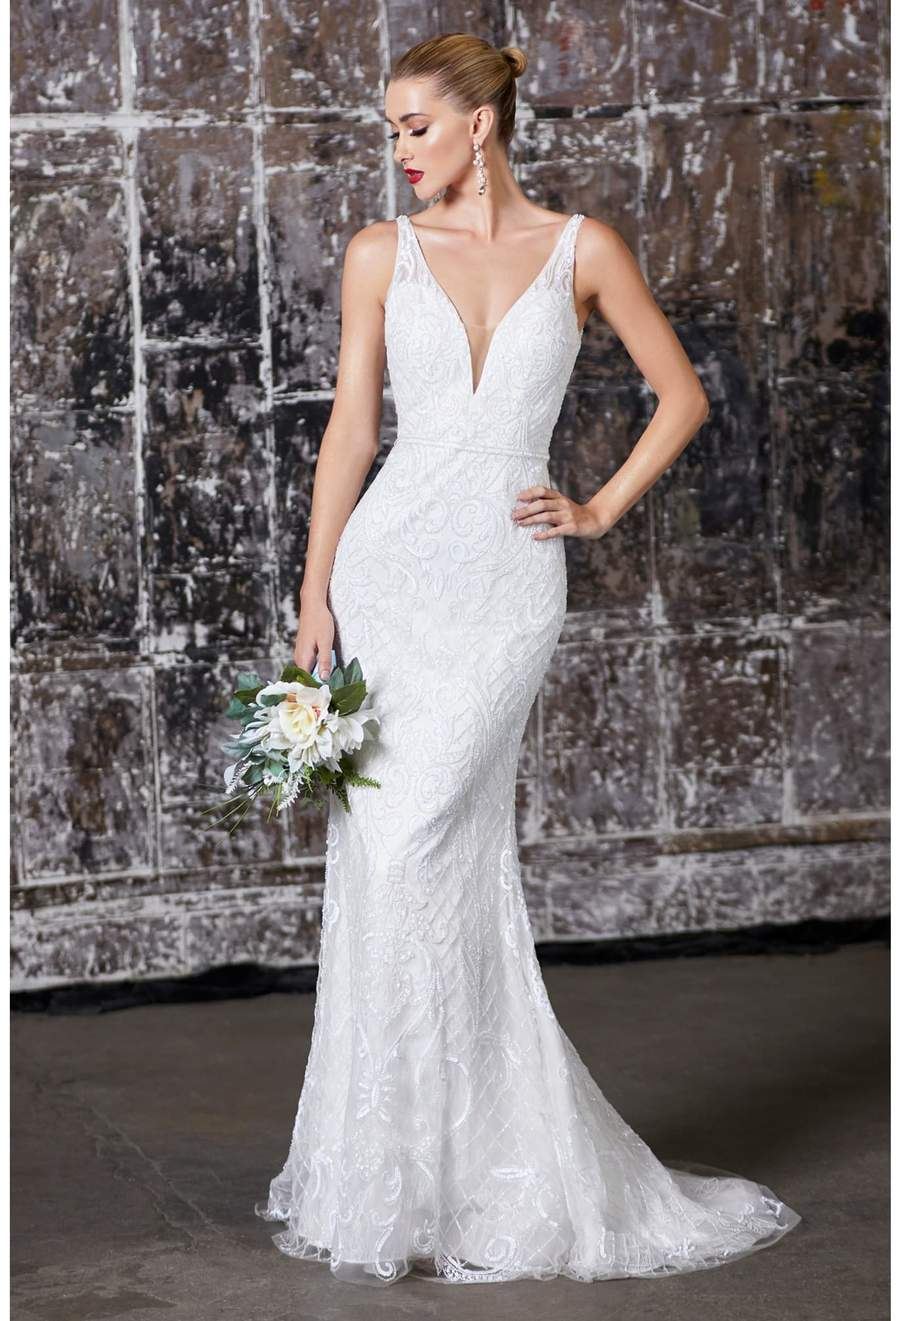 Alicia, Fitted fully beaded bridal dress with deep v-neckline and open back - KC Haute Couture Wedding Dress